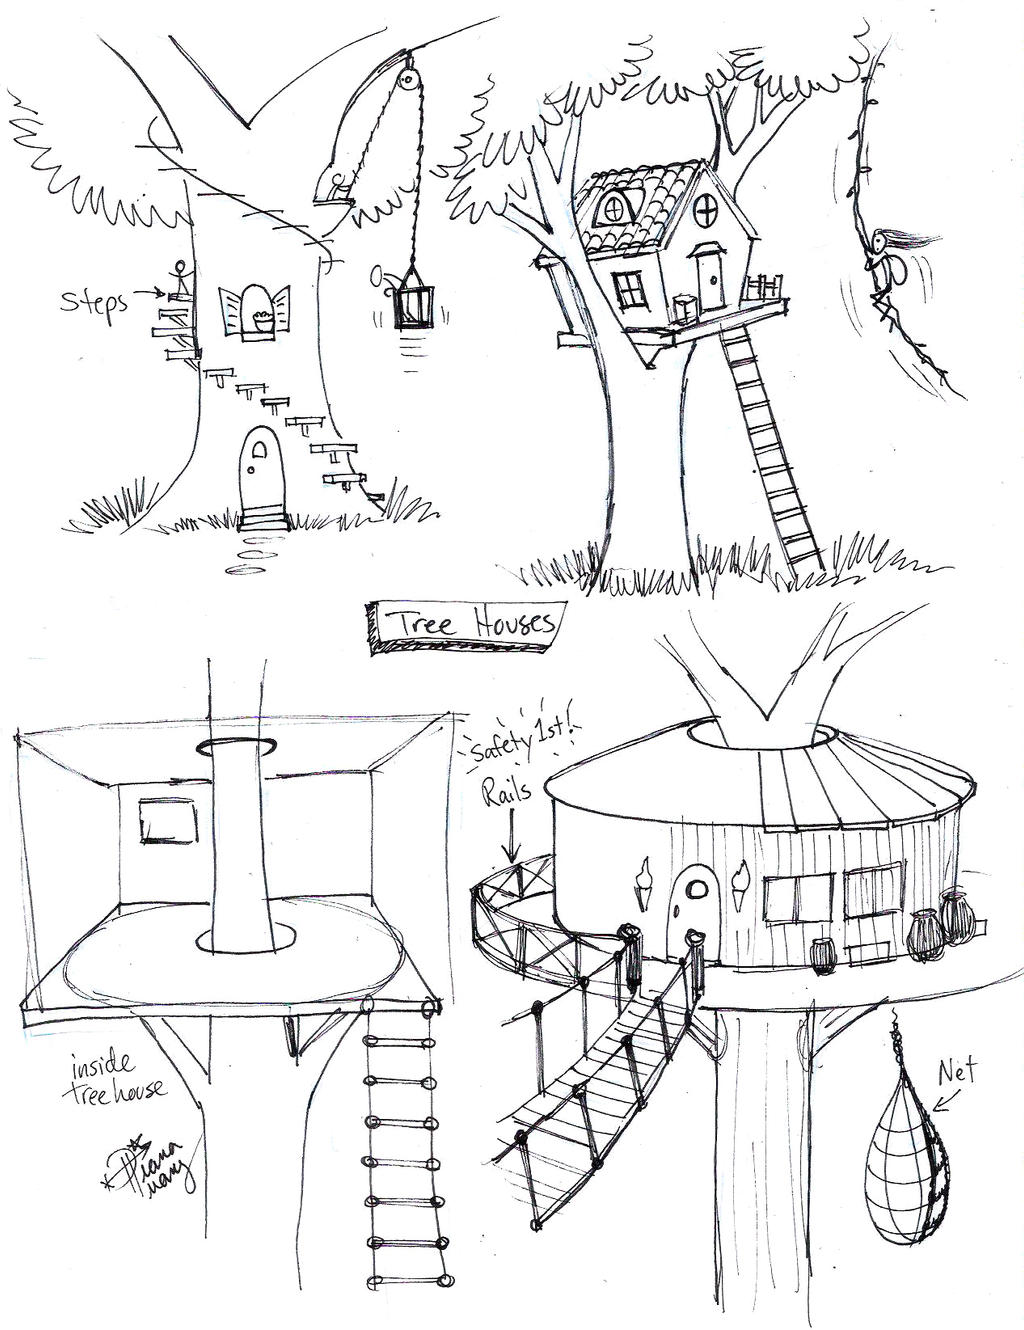 draw tree house by diana huang on deviantart